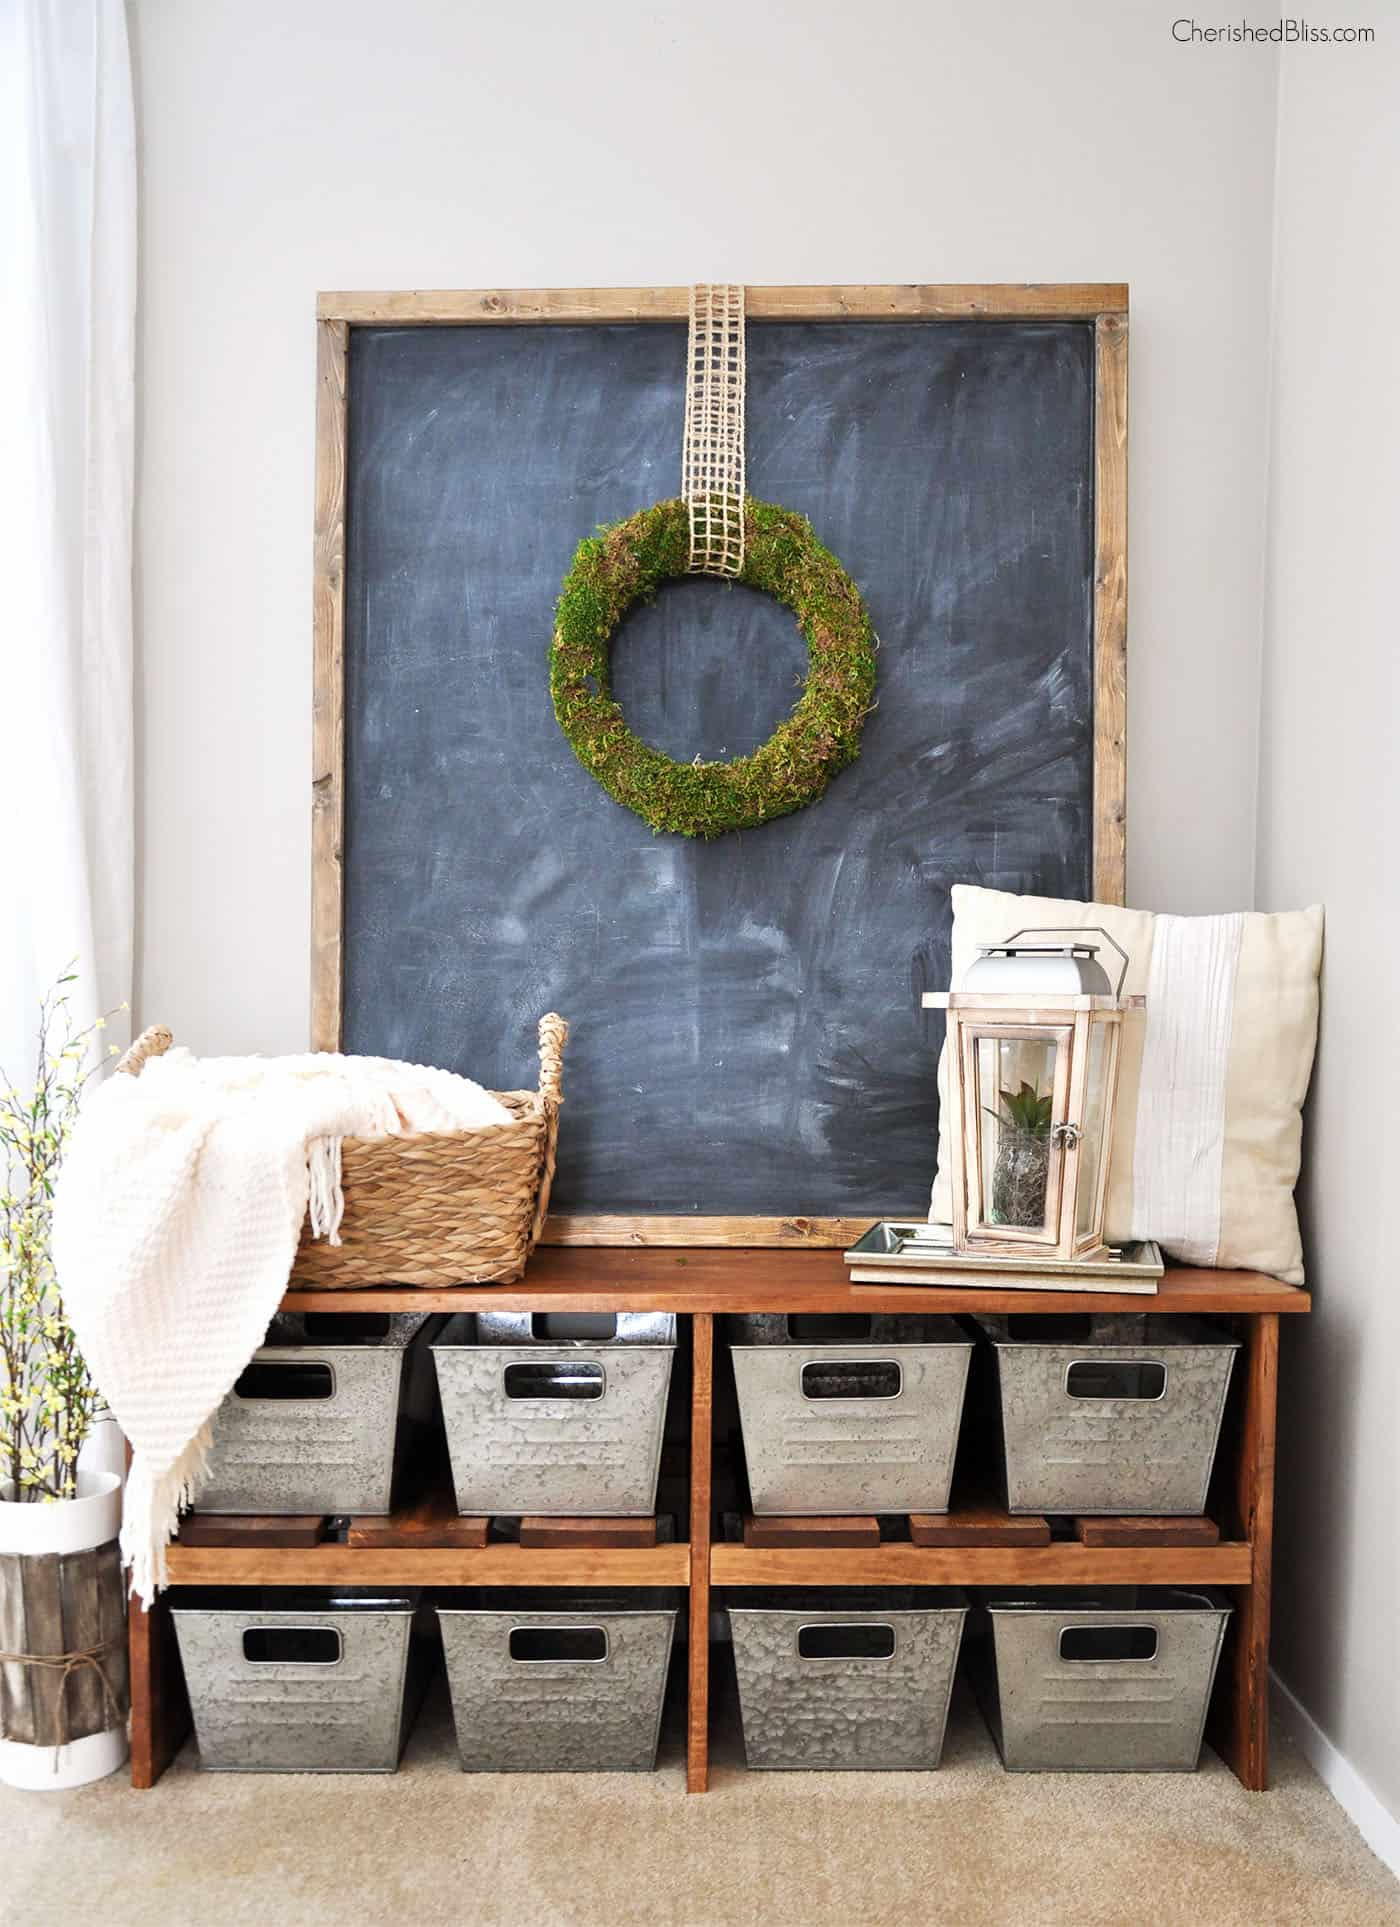 Organized metal baskets for entryway